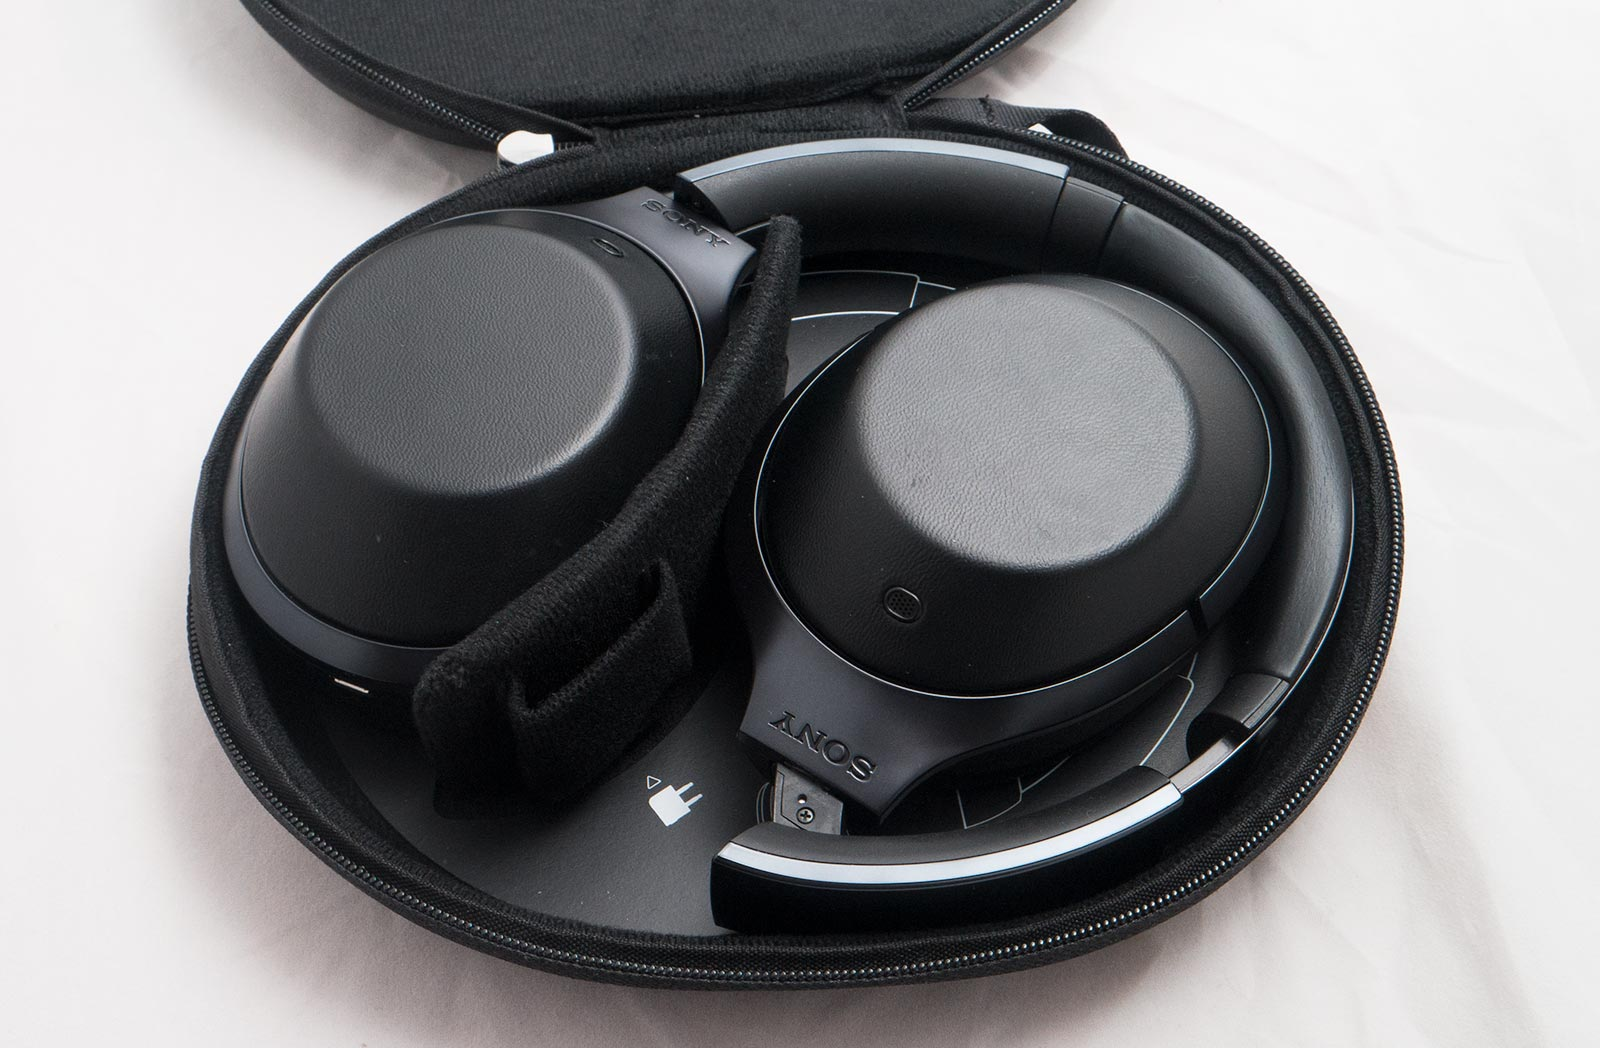 Review Sony Mdr 1000x Noise Cancellation Headphones Noice Cancelling Bluetooth Headphone 2016 22